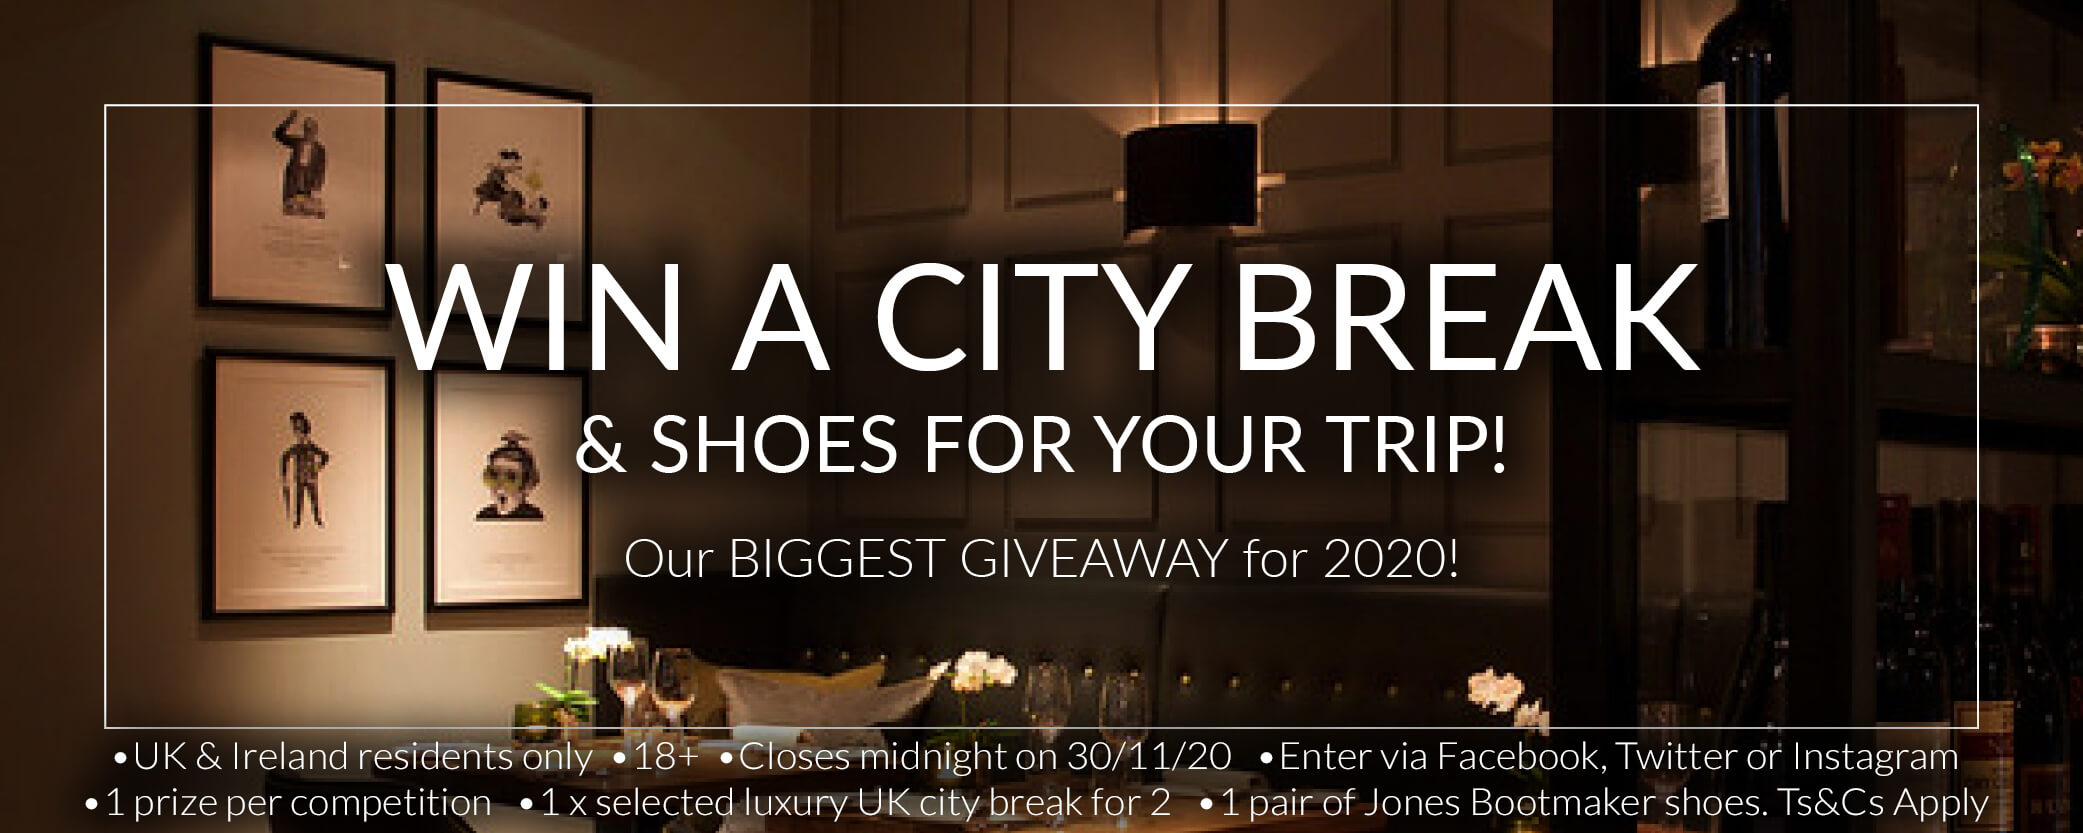 WIN a Luxury City Break!